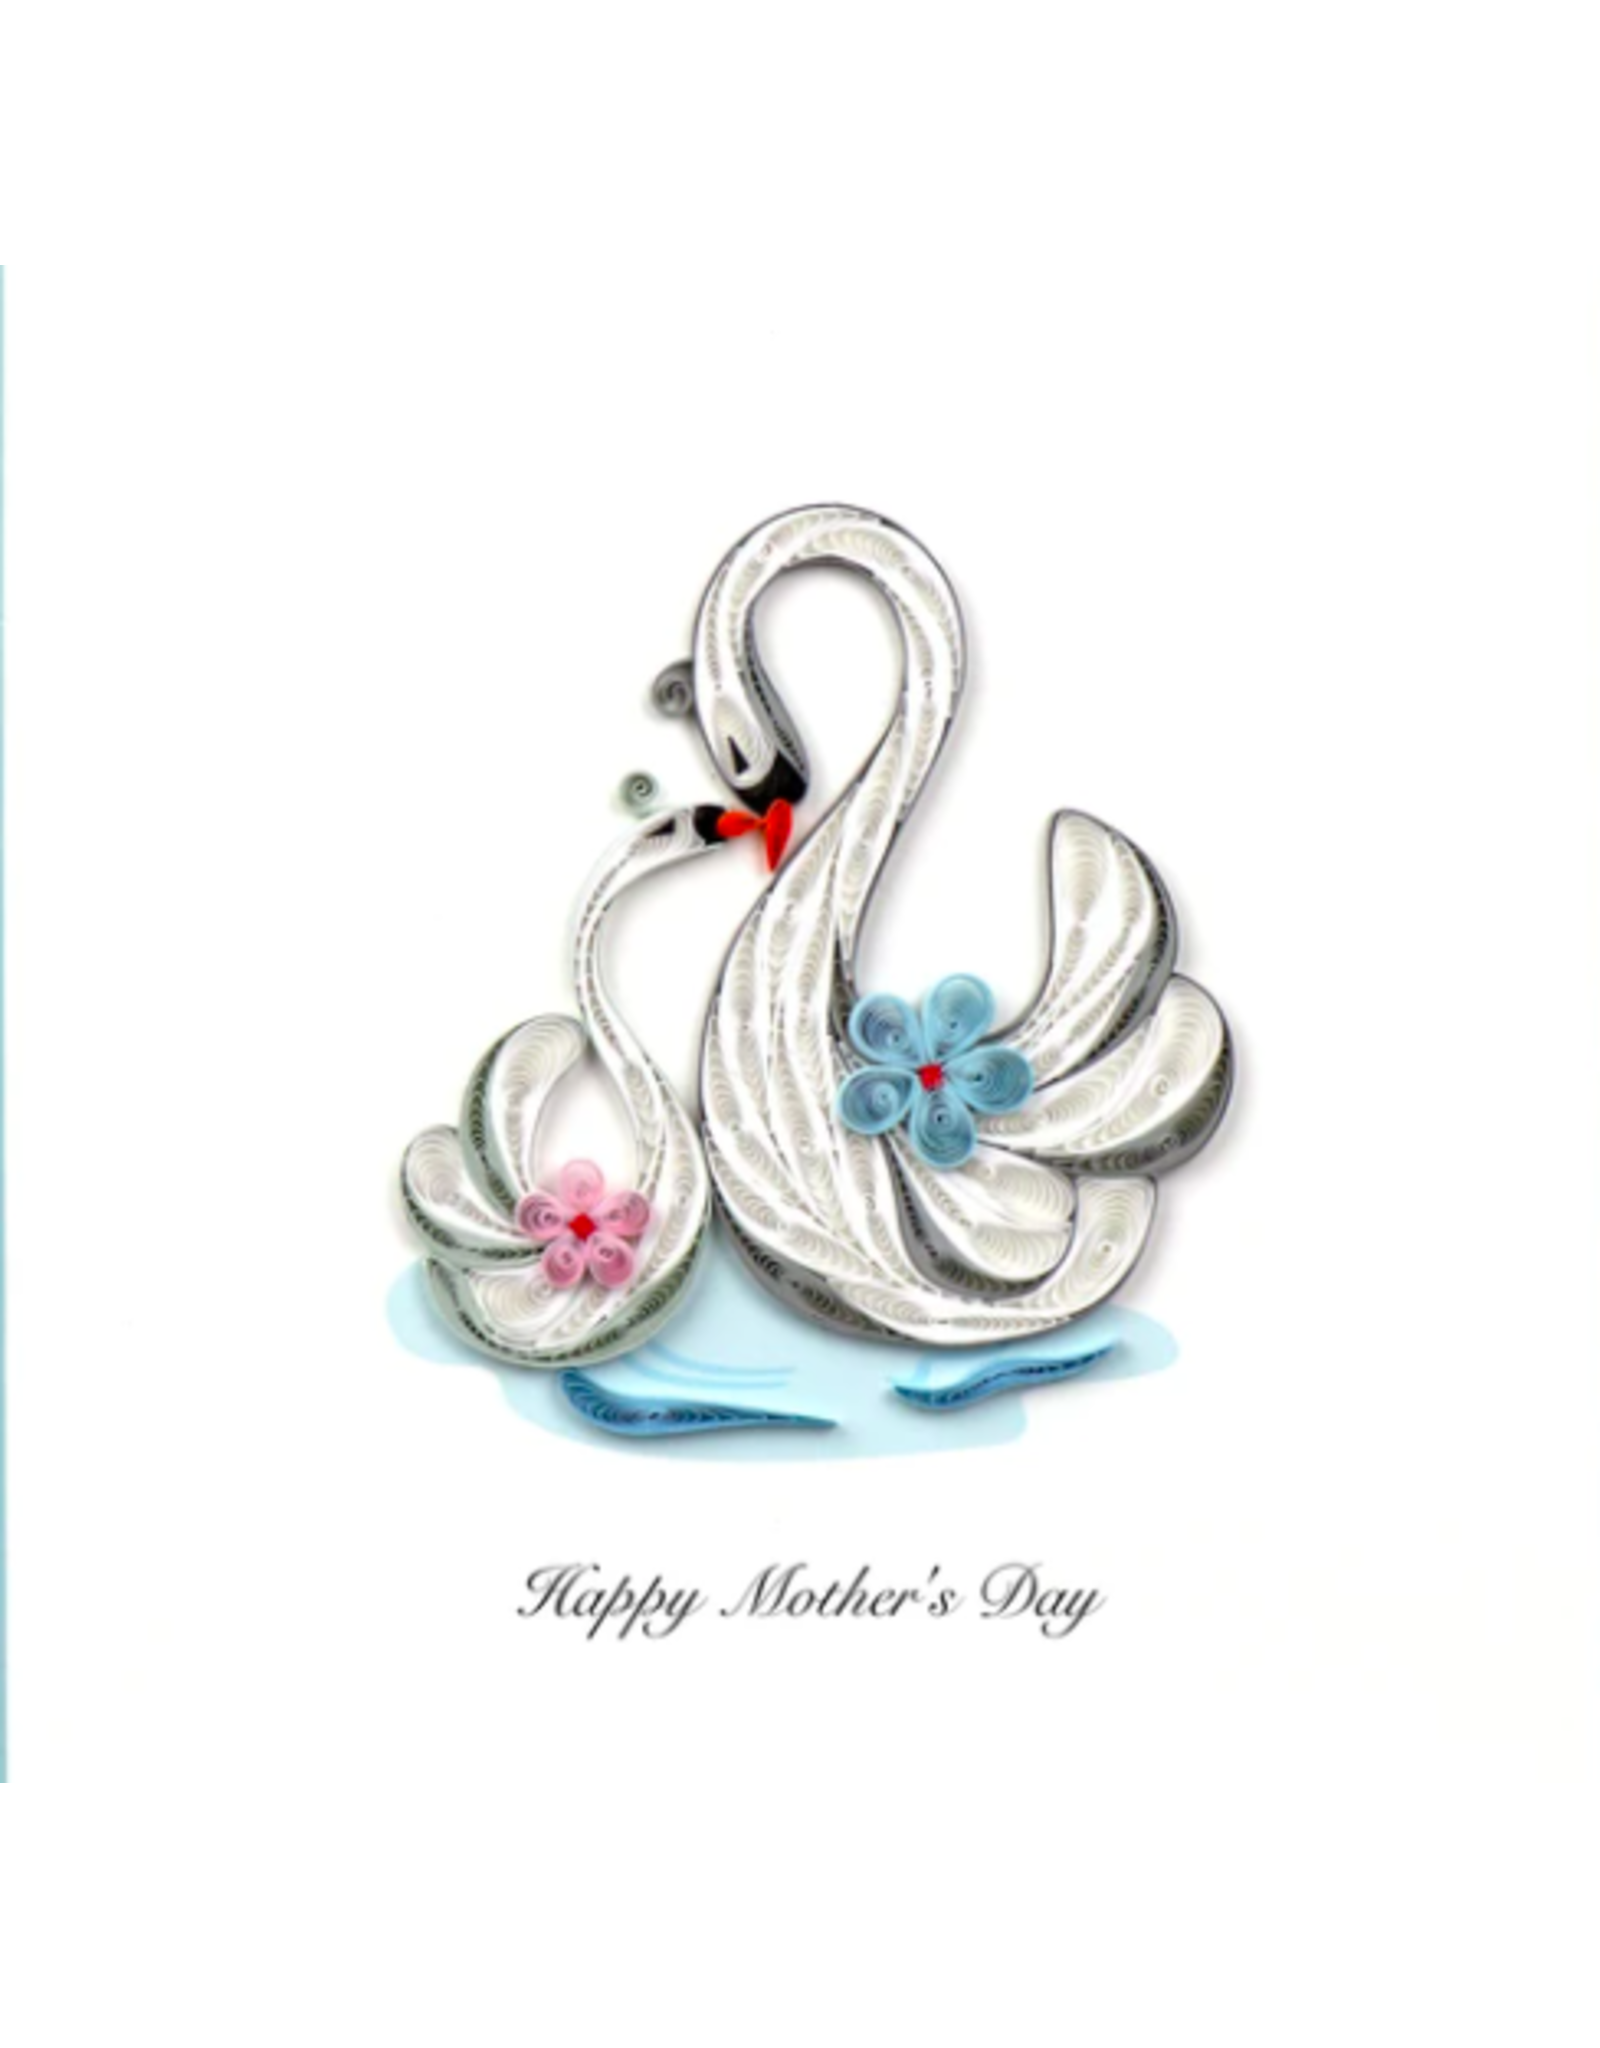 Happy Mother's Day Swans